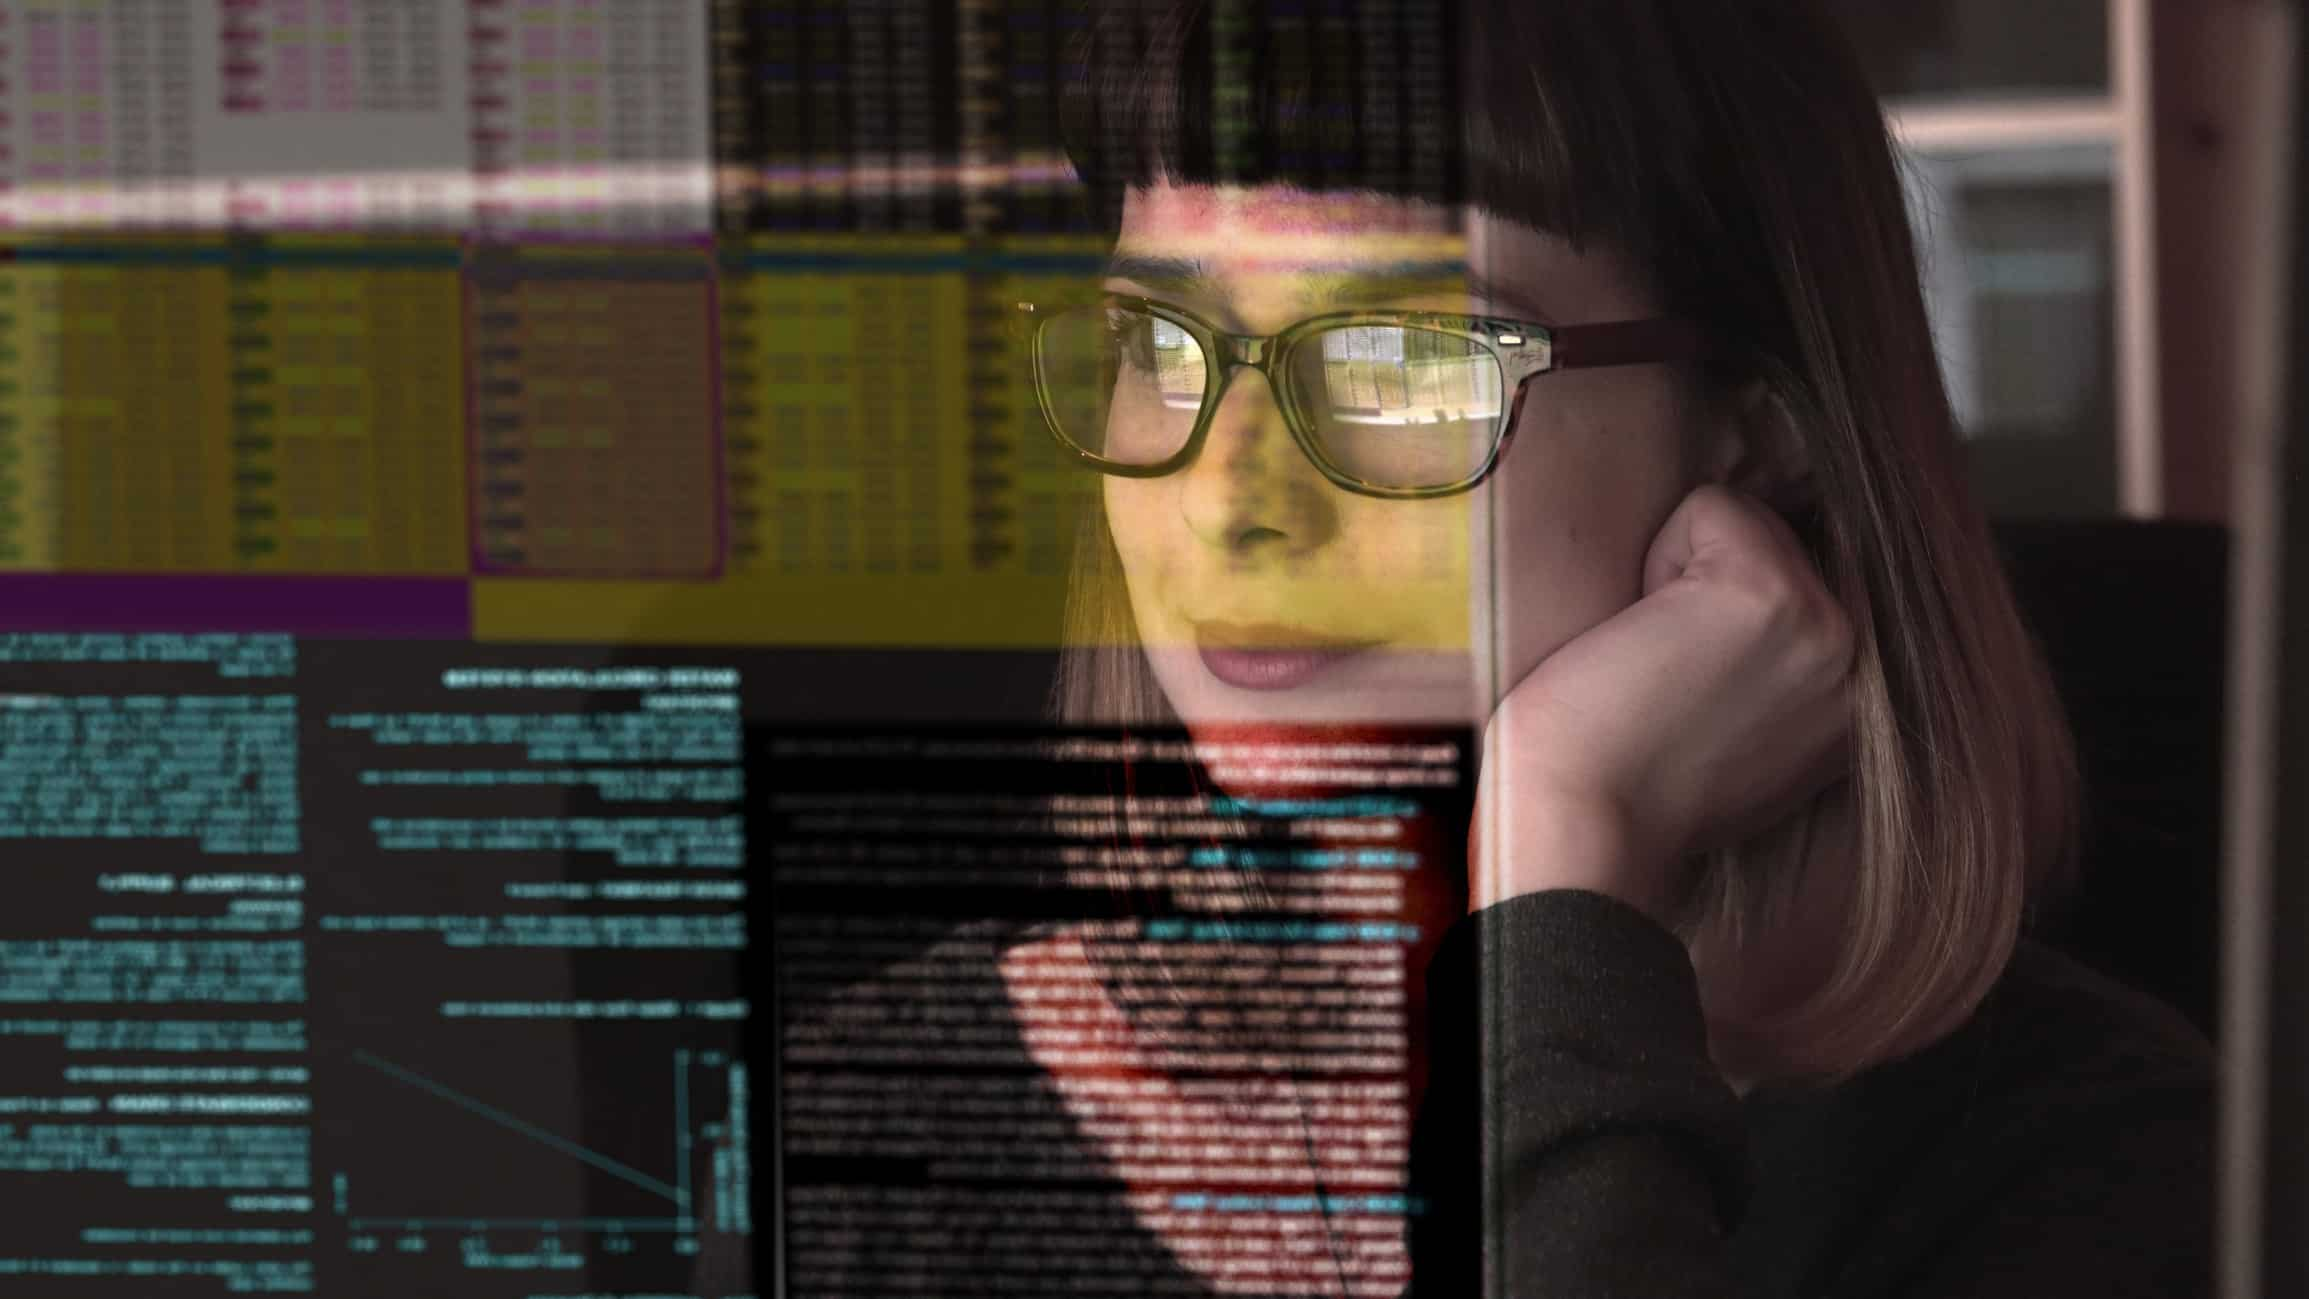 a woman with a small satisfied smile on her face looks at reflected, illuminated data on screens in front of her.